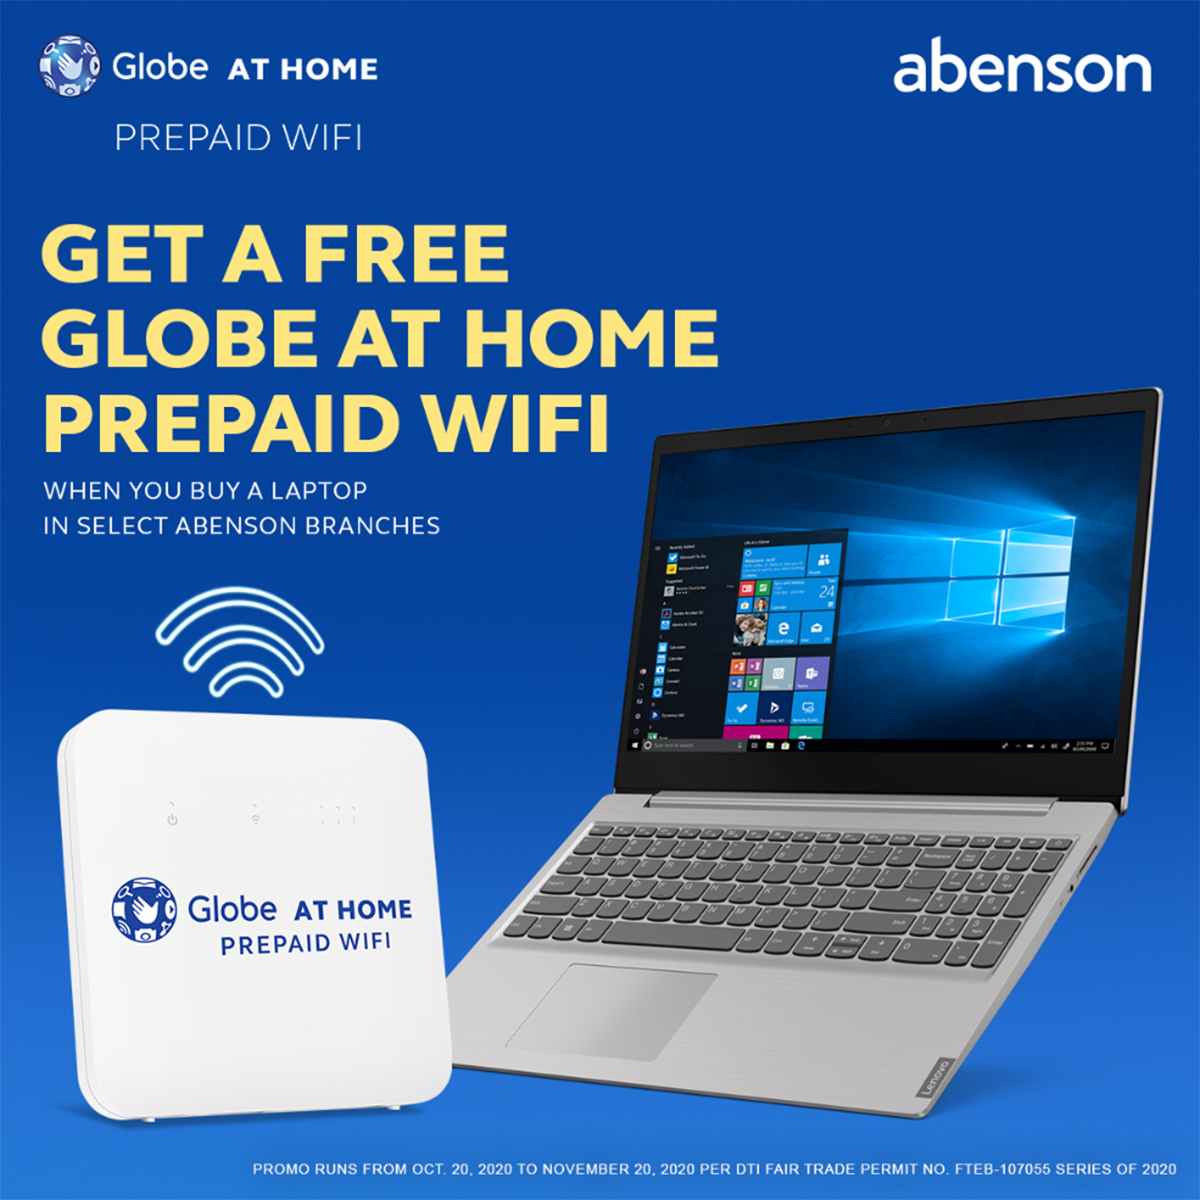 Globe At Home partners with gadget and appliance retail chain to offer device bundles for Work-From-Home and E-Learning